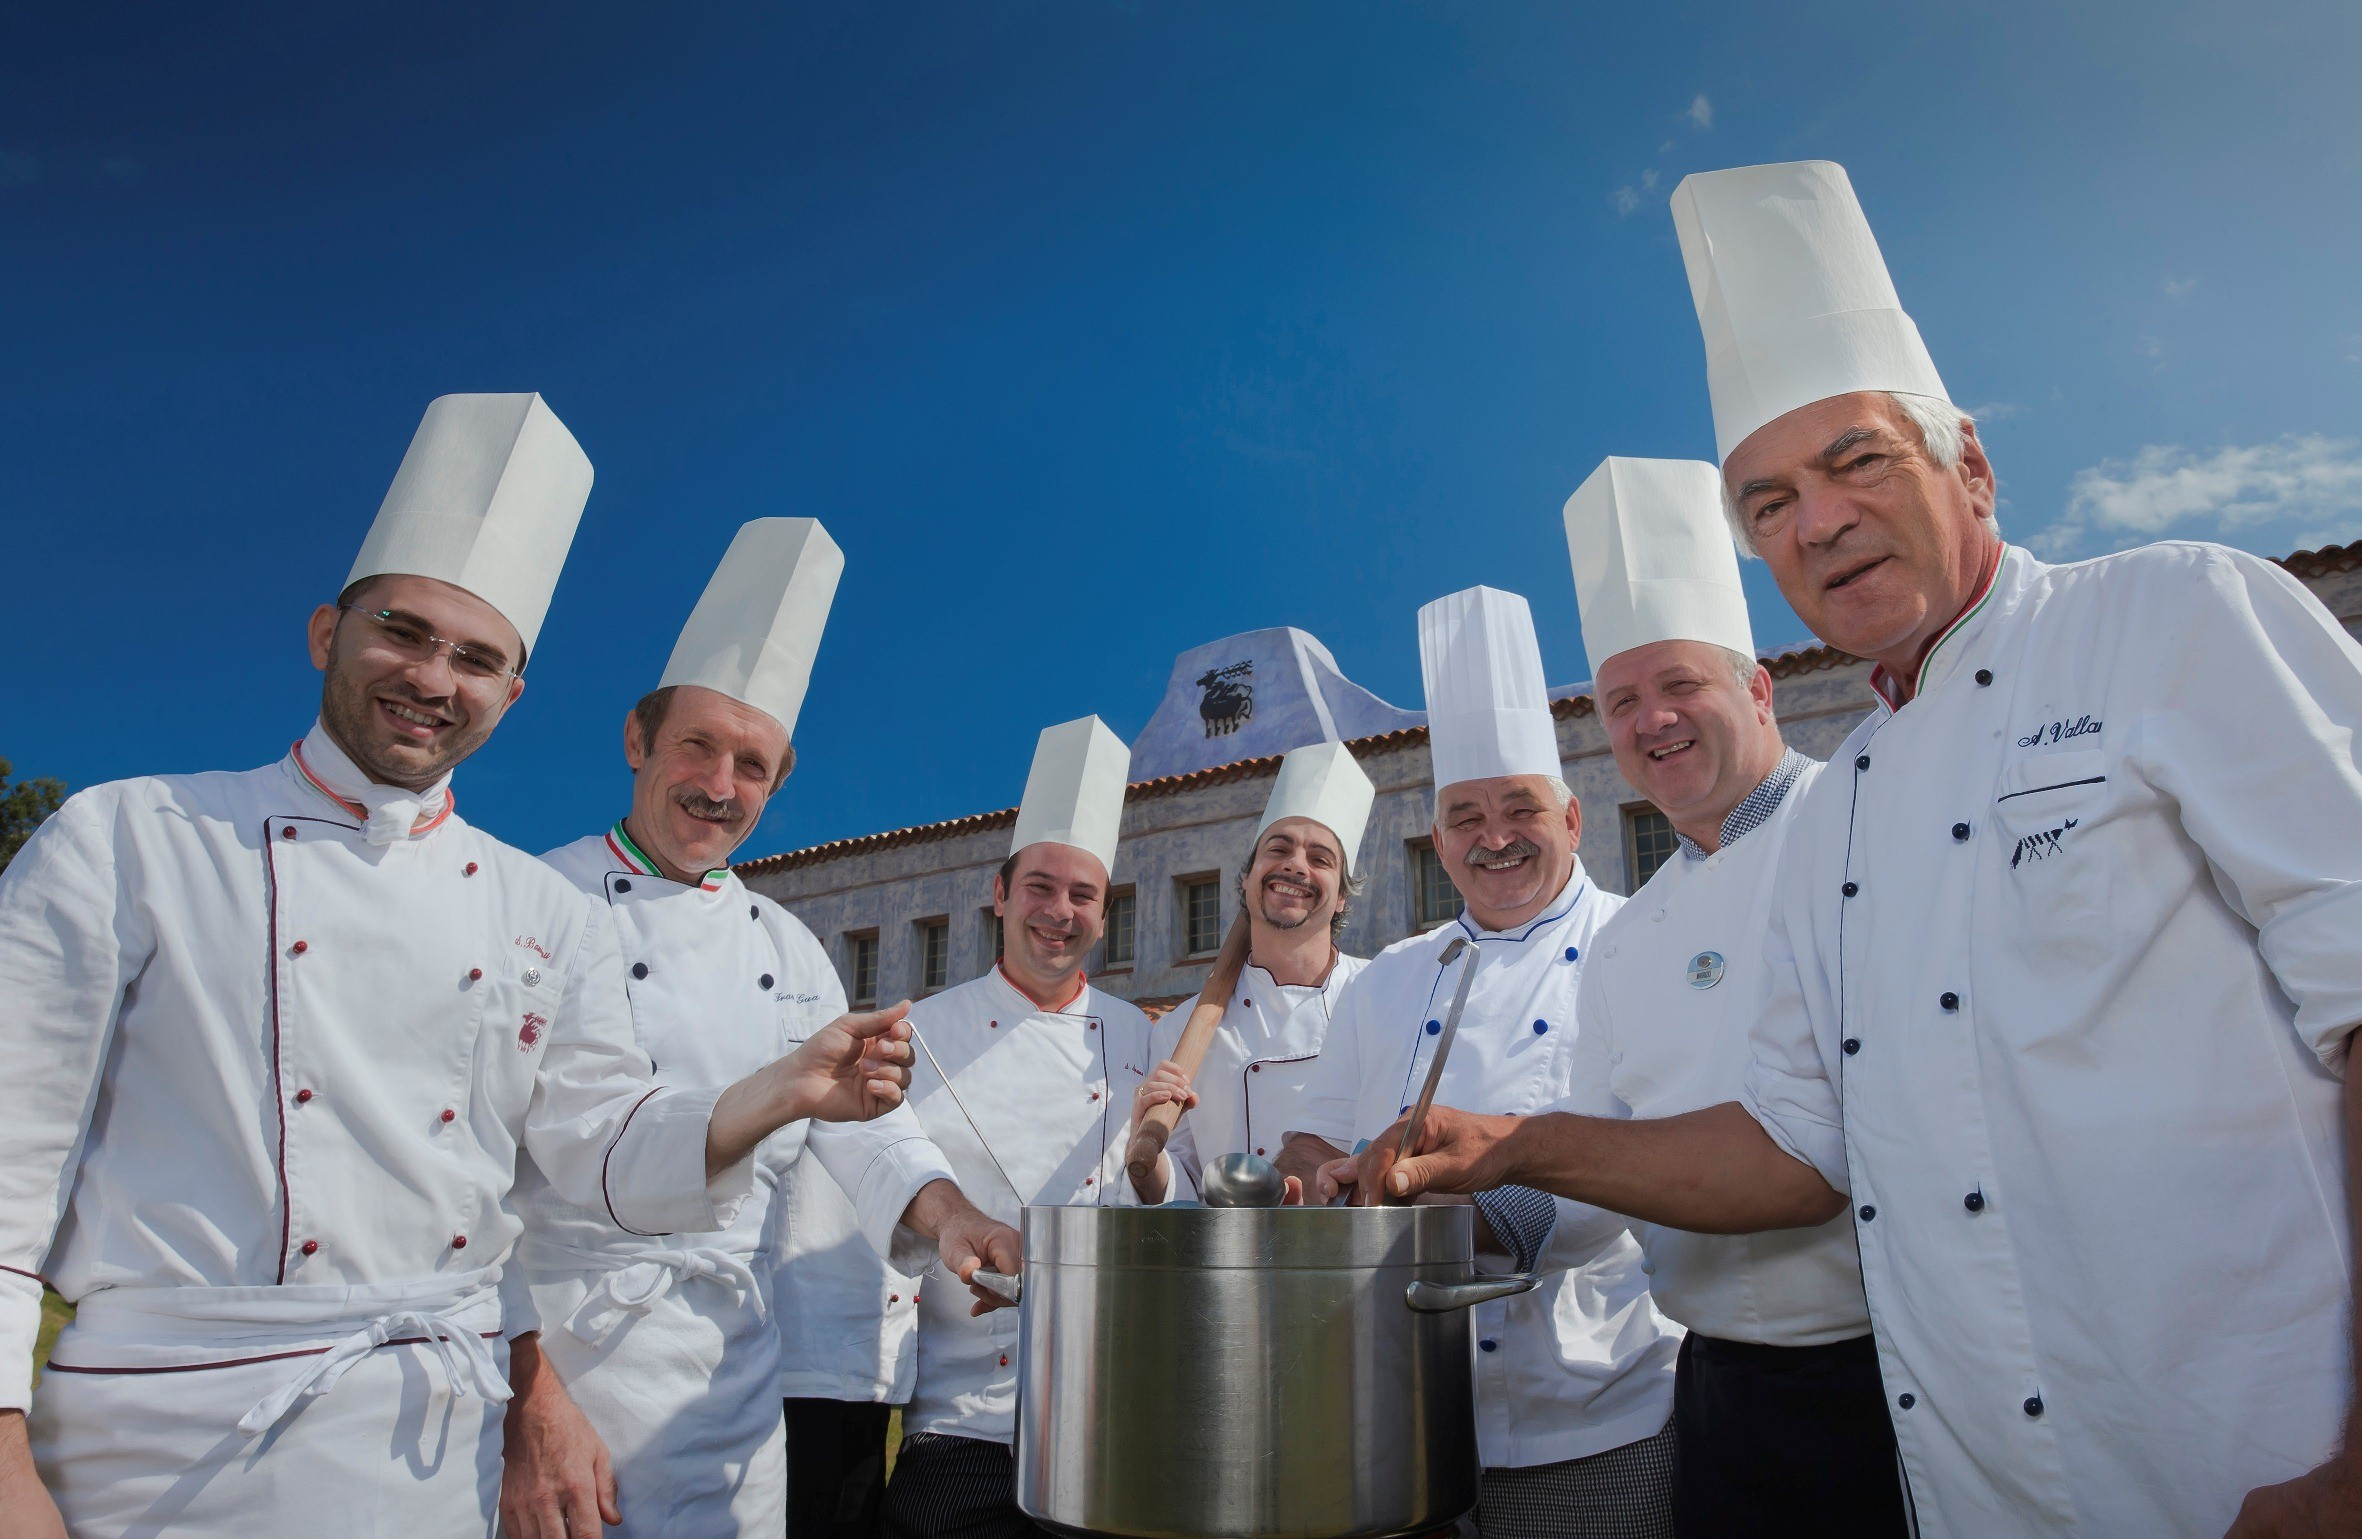 Porto Cervo Food Festival 2015: the chefs